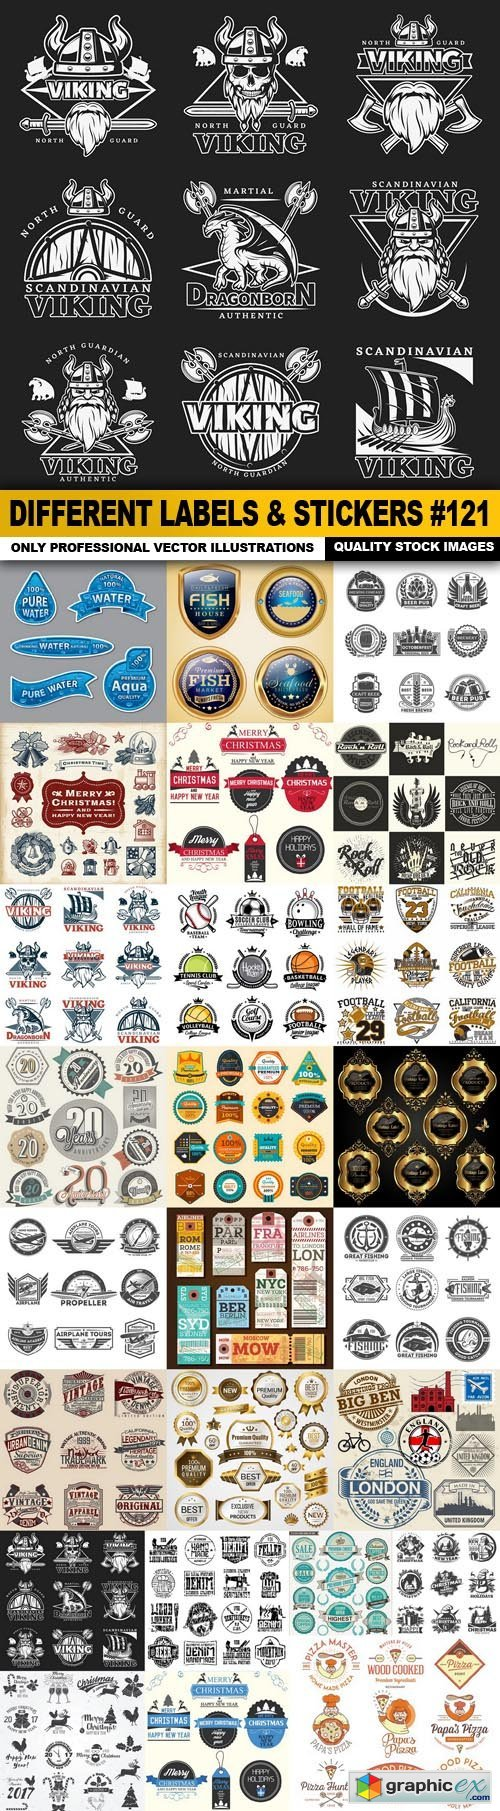 Different Labels & Stickers #121 - 25 Vector